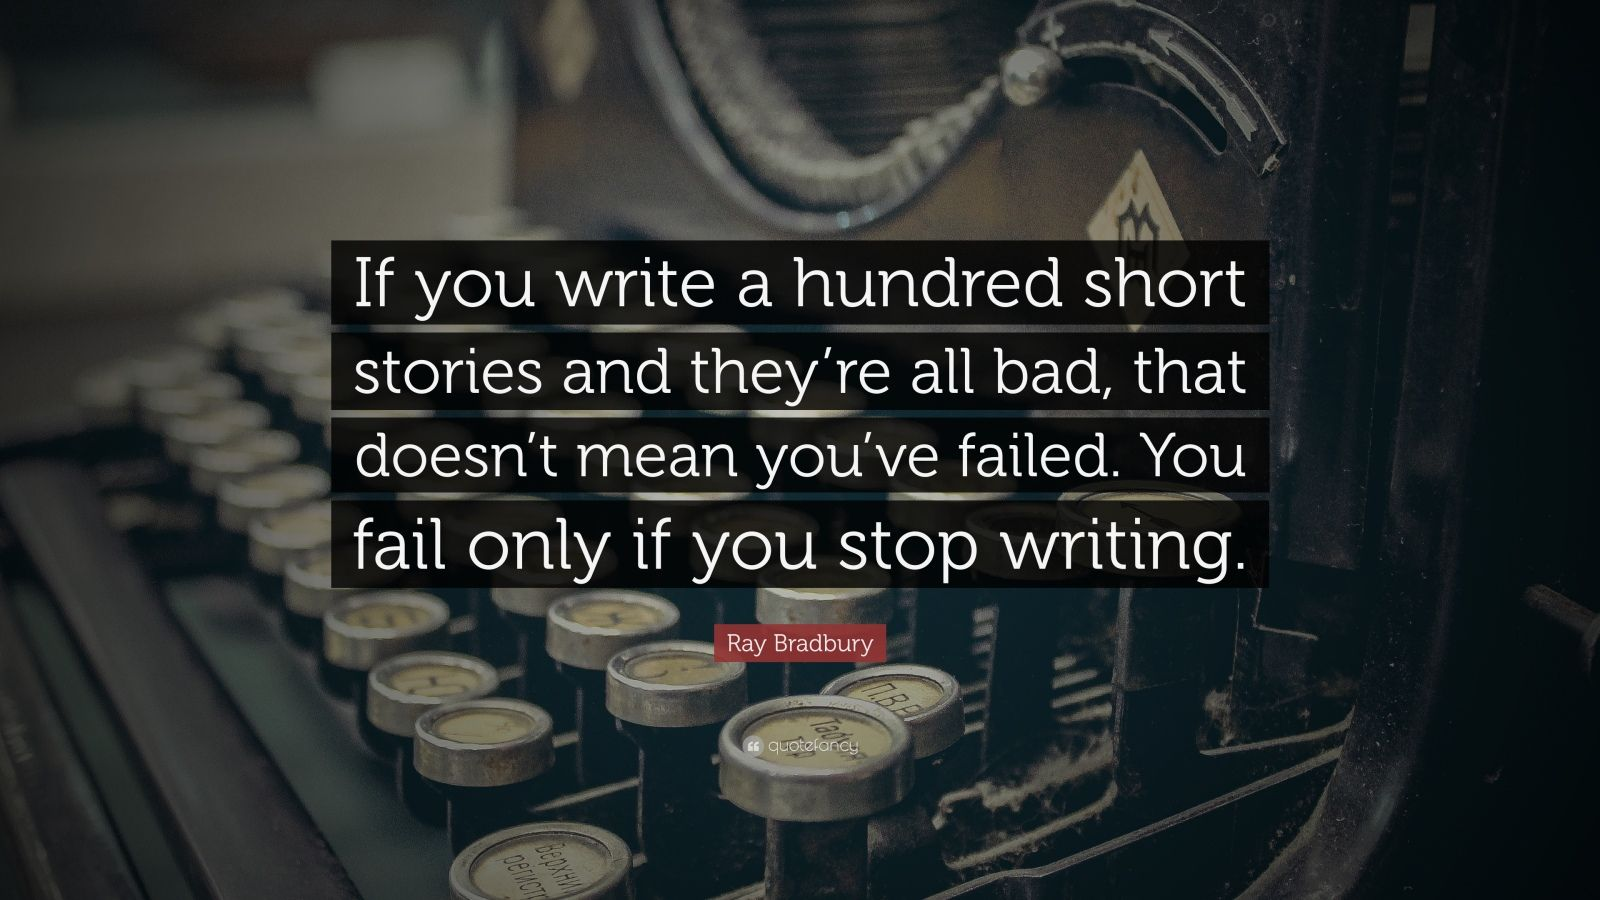 """Ray Bradbury Quote: """"If you write a hundred short stories and they're all bad, that doesn't mean you've failed. You fail only if you stop writing."""""""